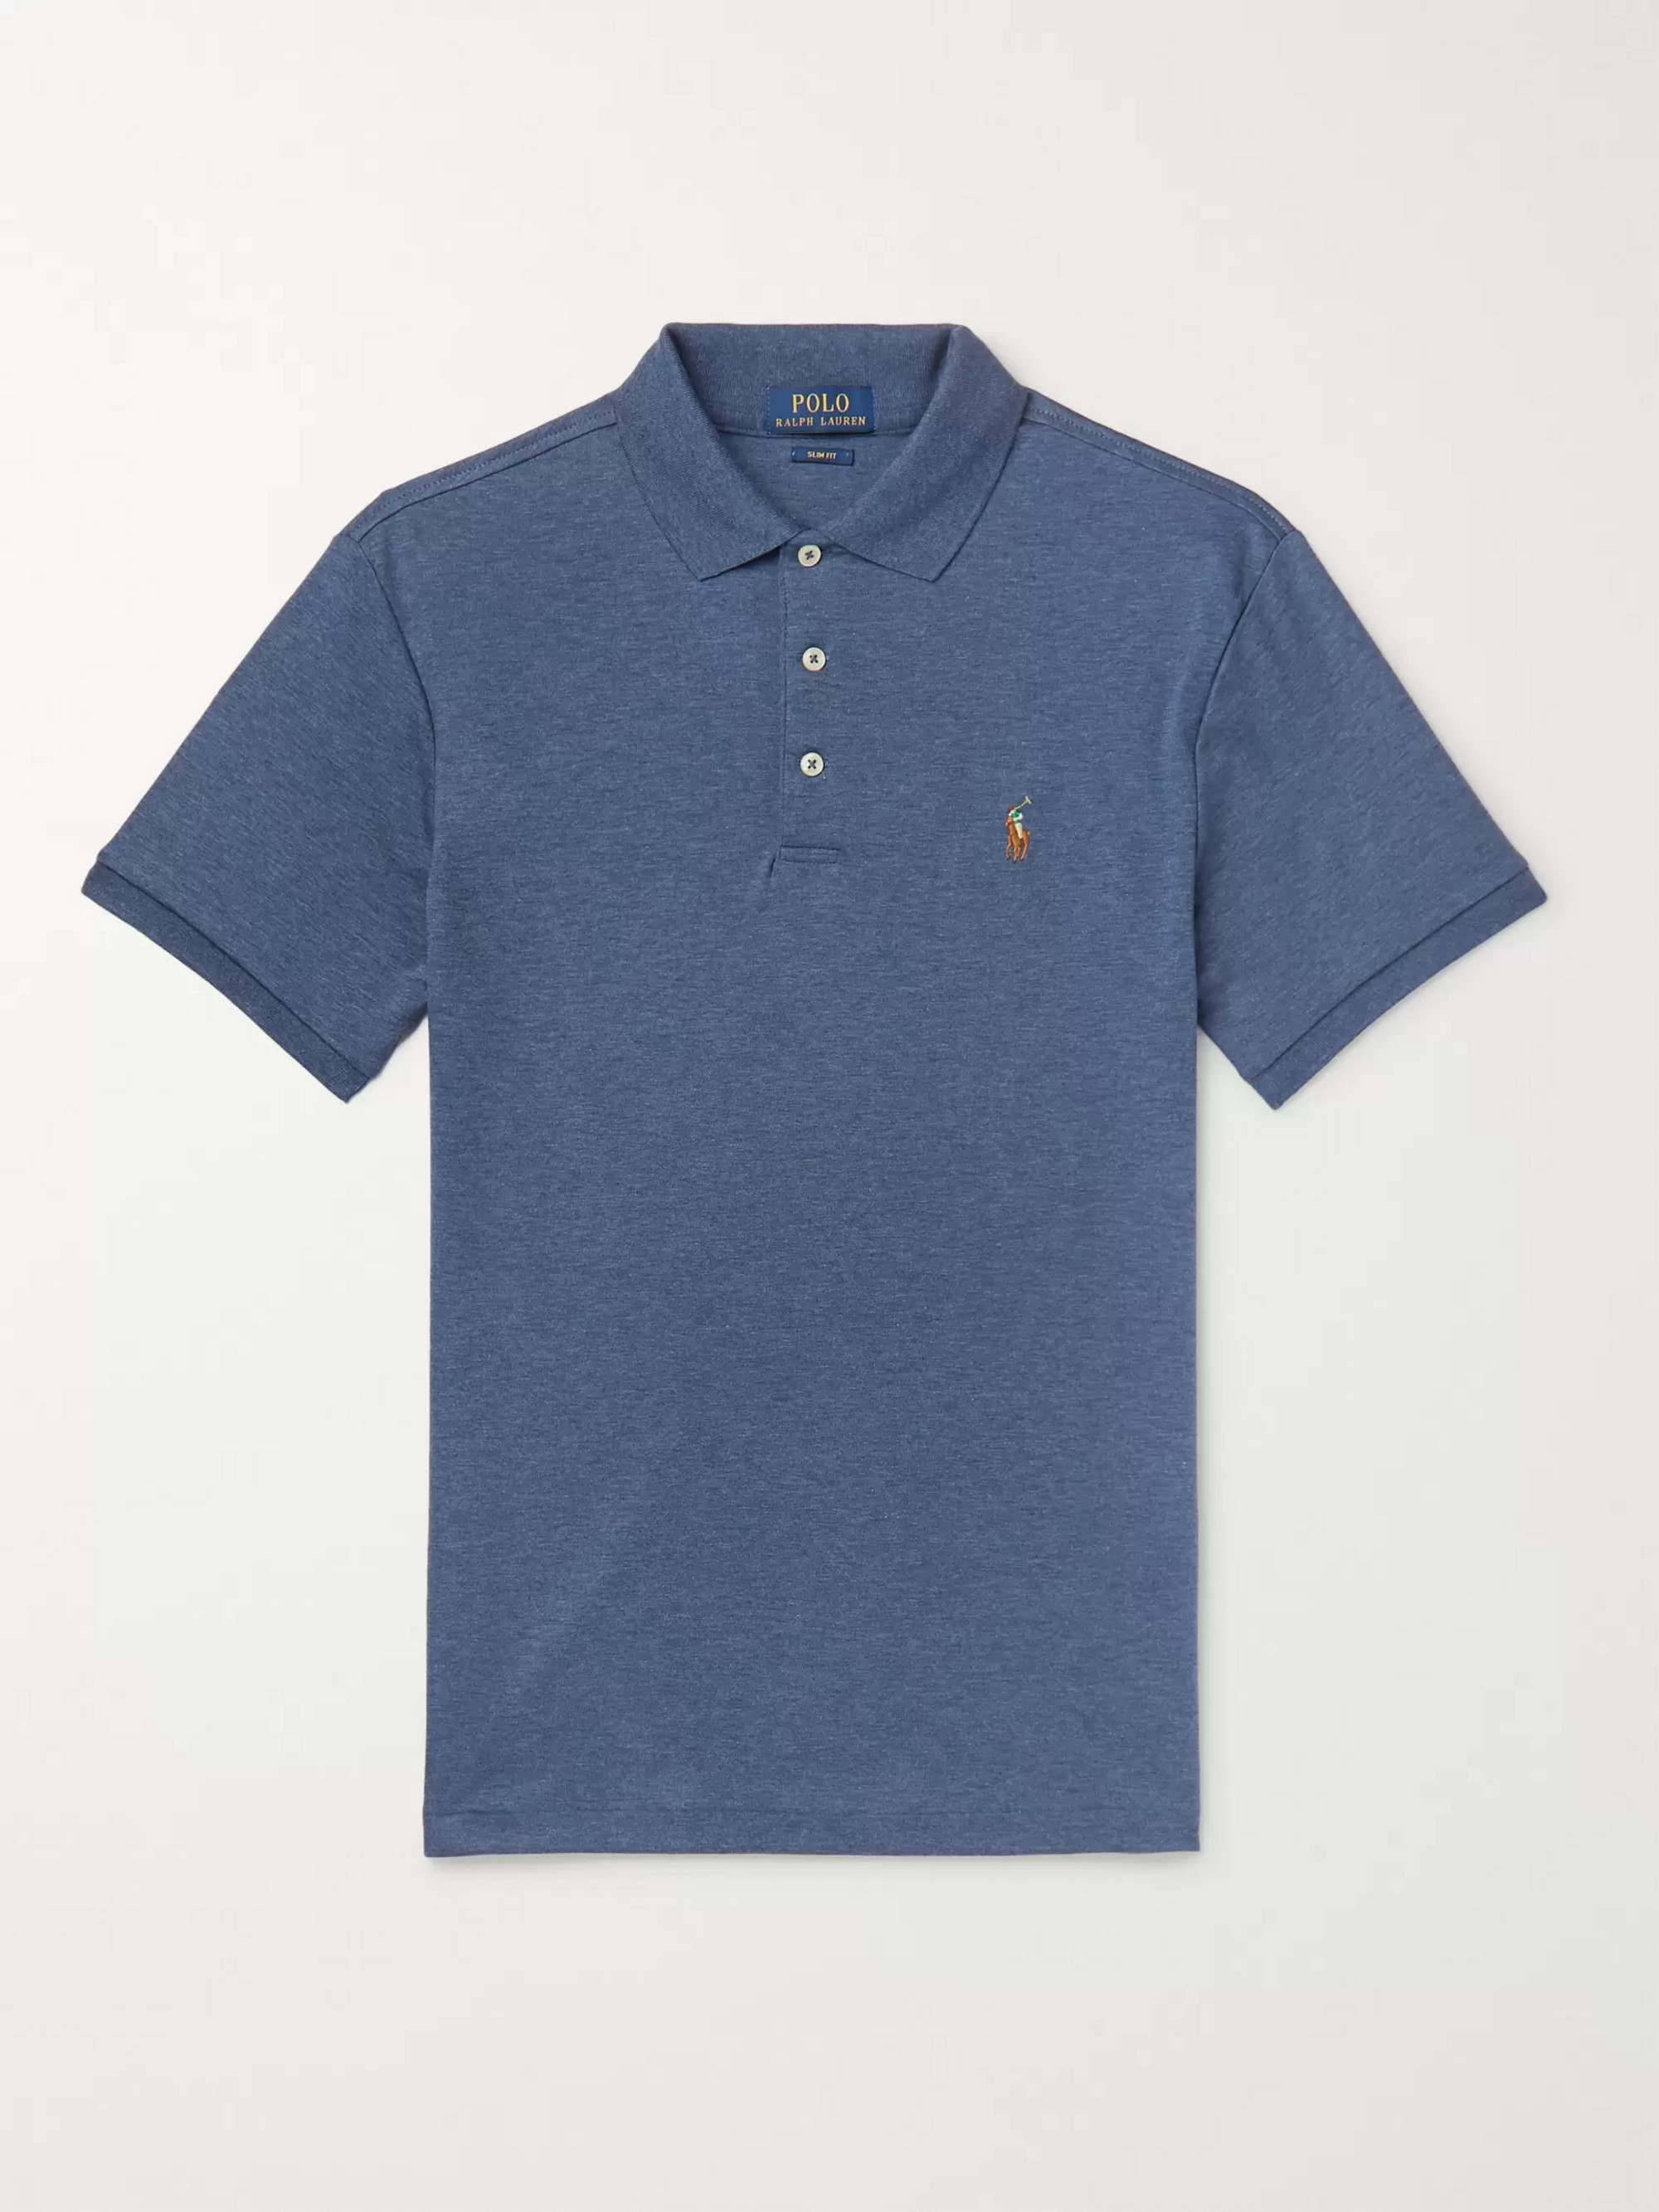 Polo Ralph Lauren Slim-Fit Mélange Pima Cotton-Jersey Polo Shirt